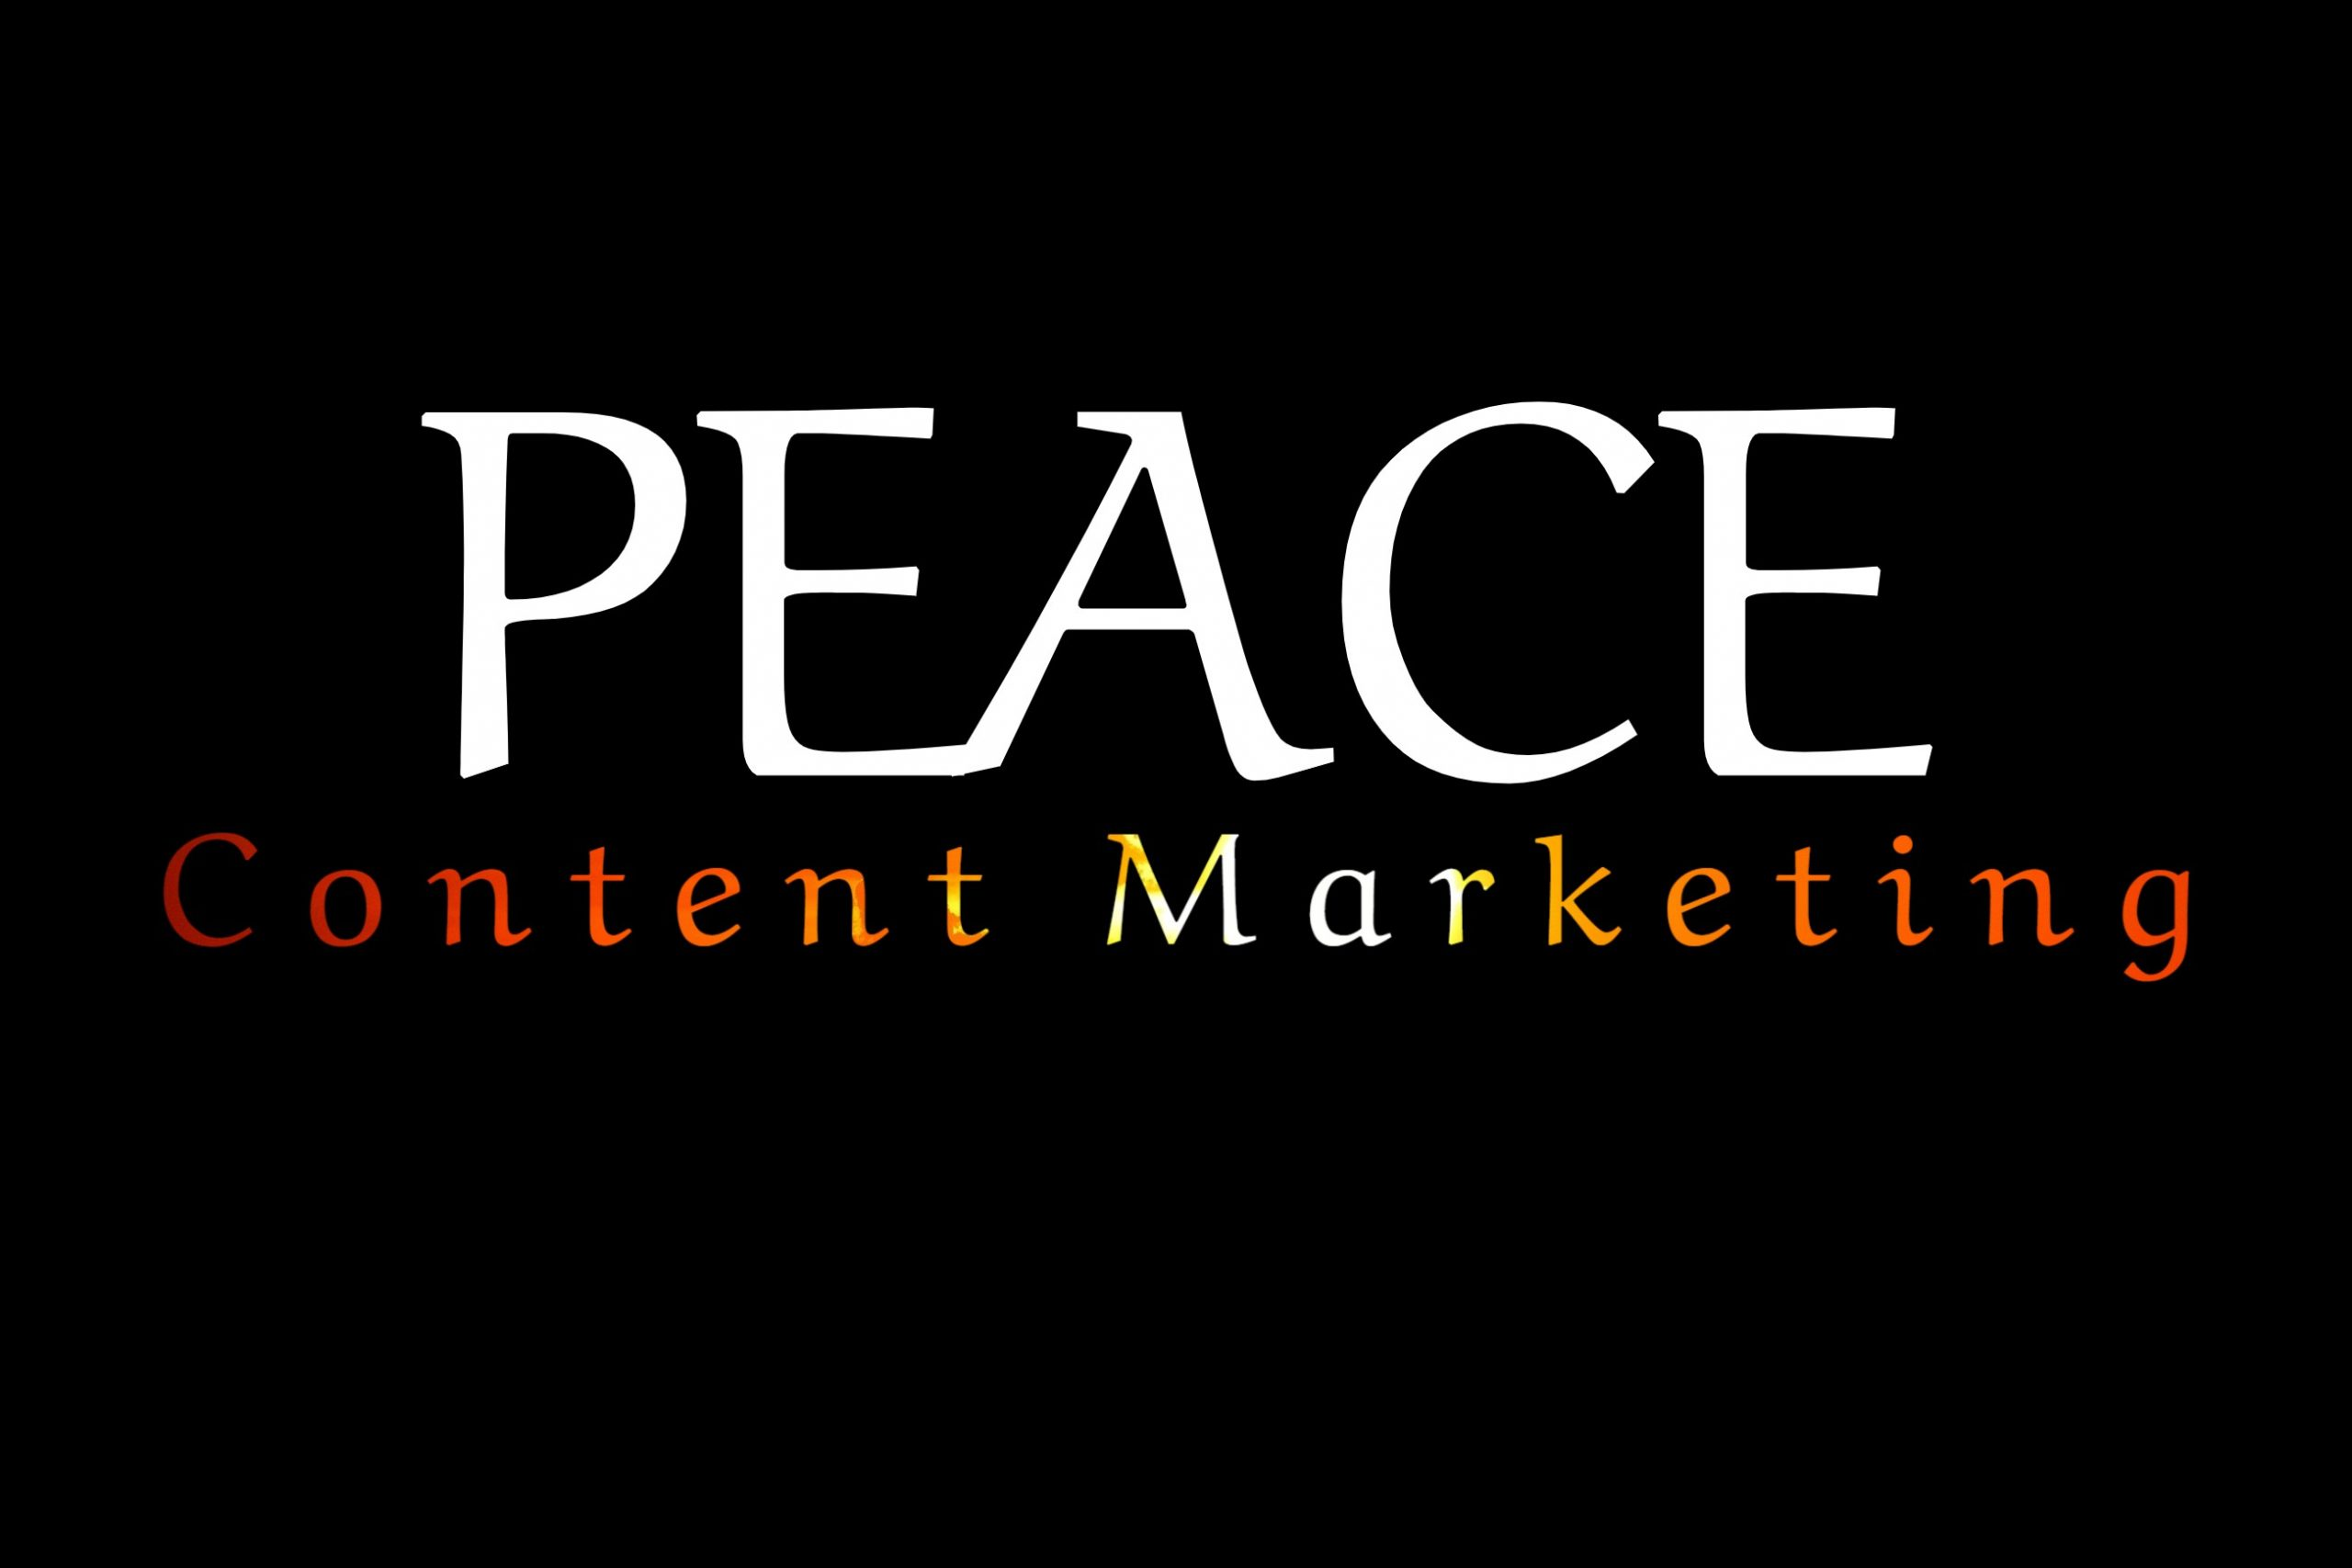 PEACE Content Marketing